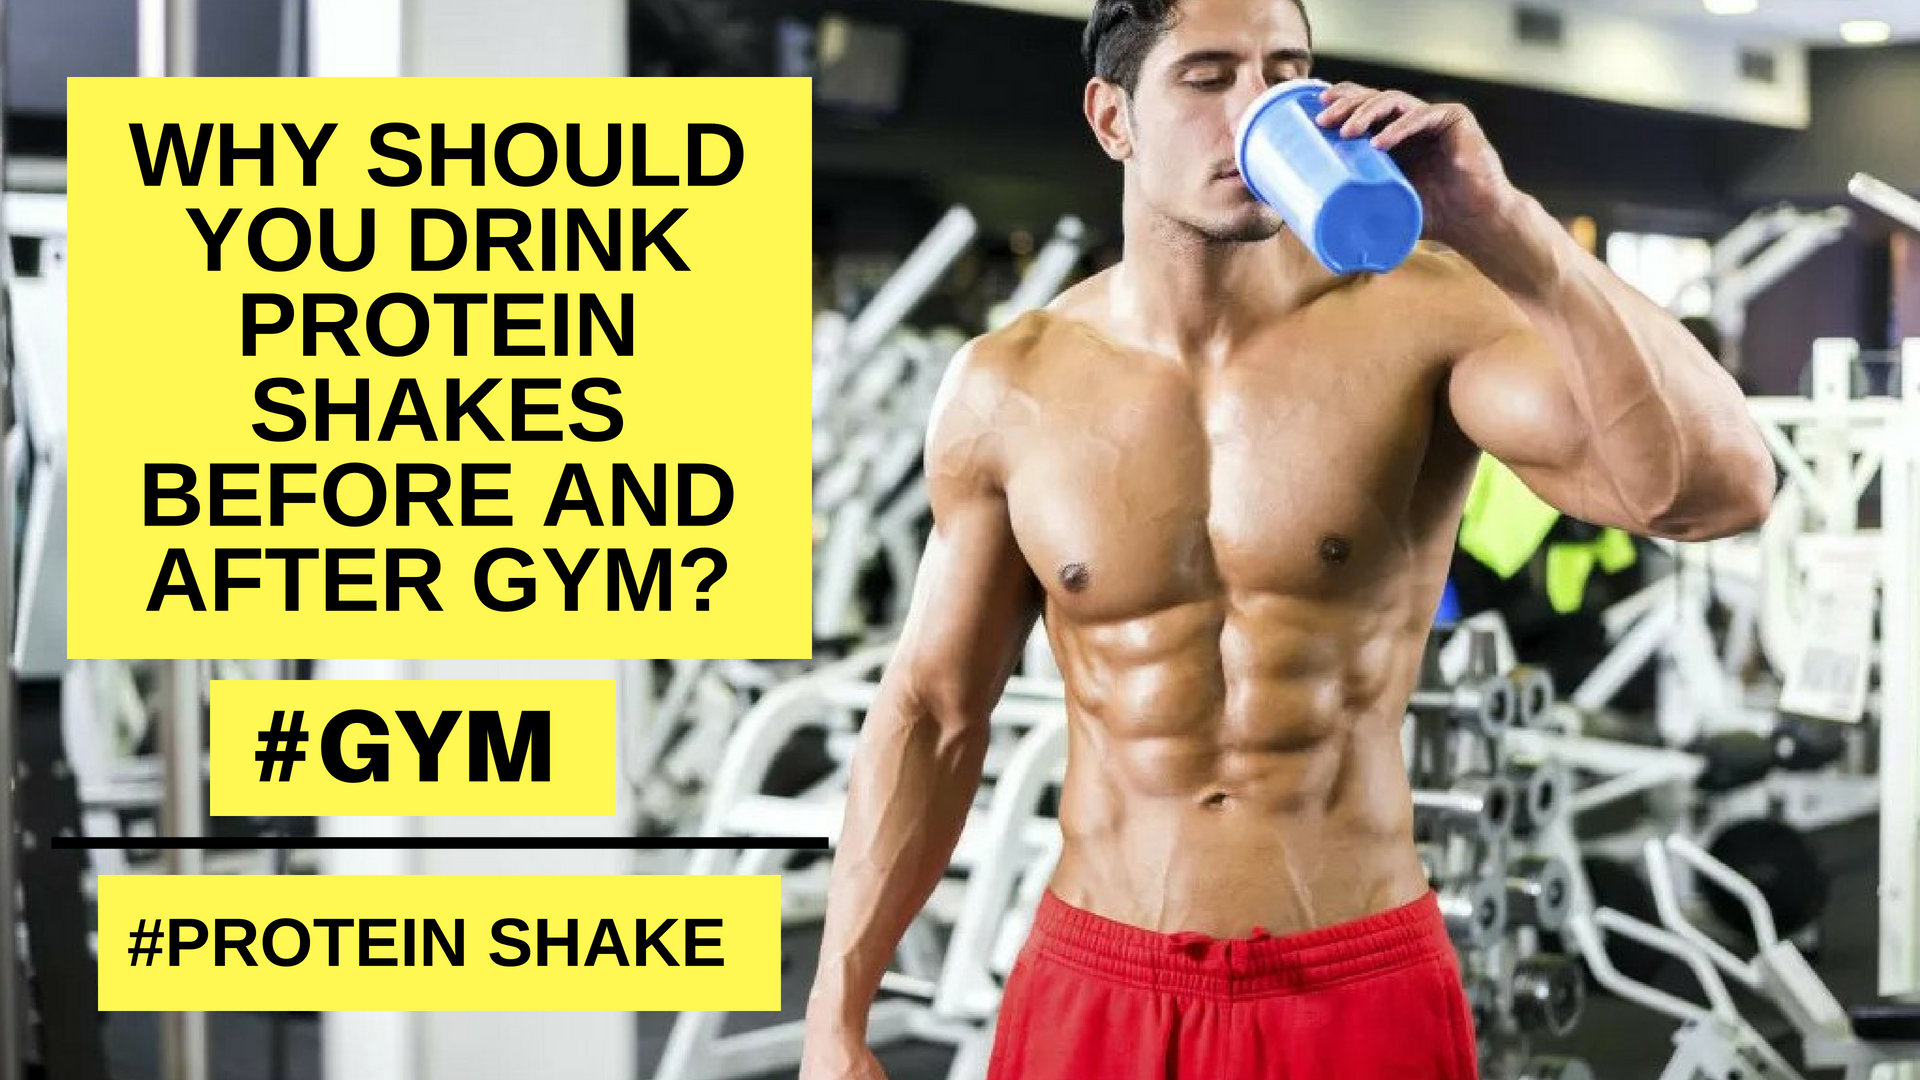 Why should you drink protein shakes before and after Gym?